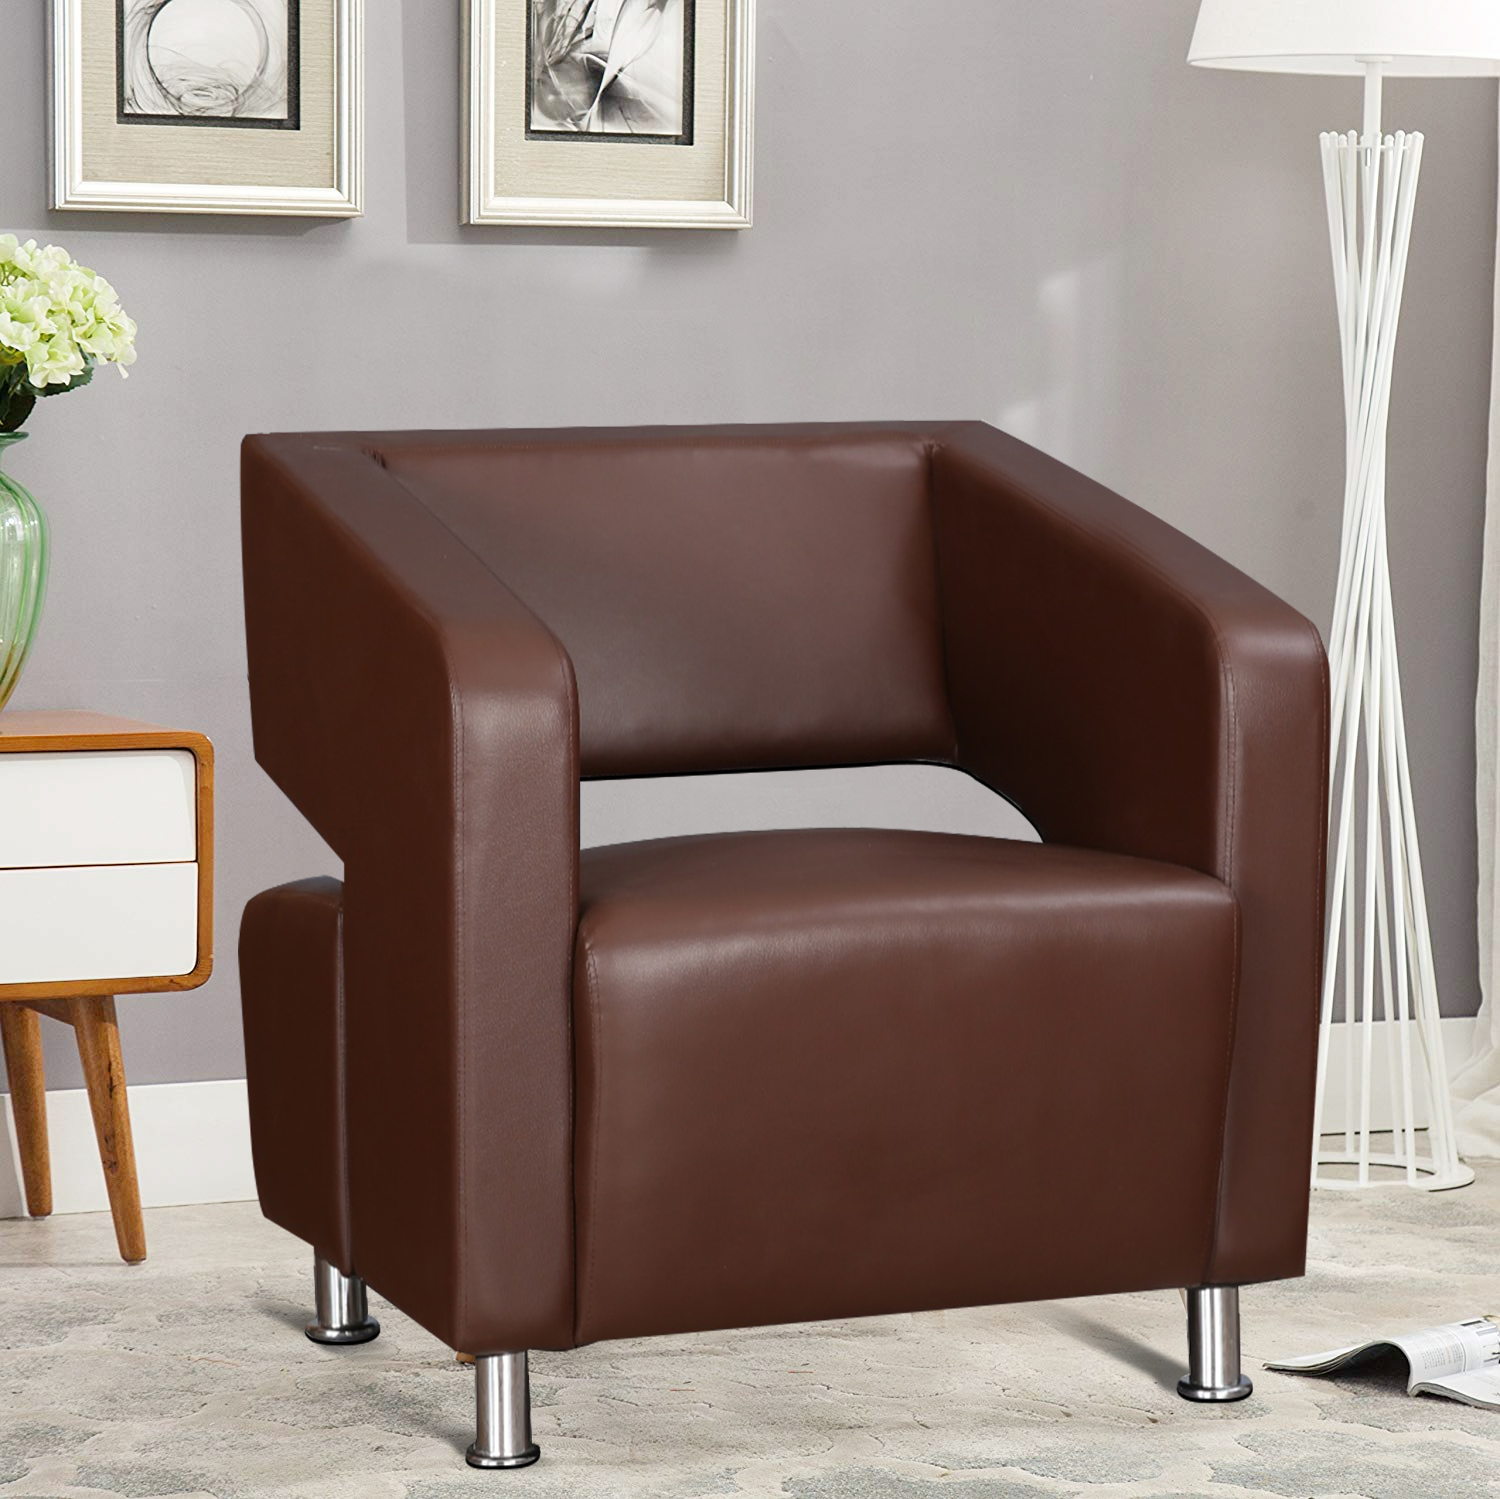 Arrow PVC Office Chair in Brown Colour by HomeTown